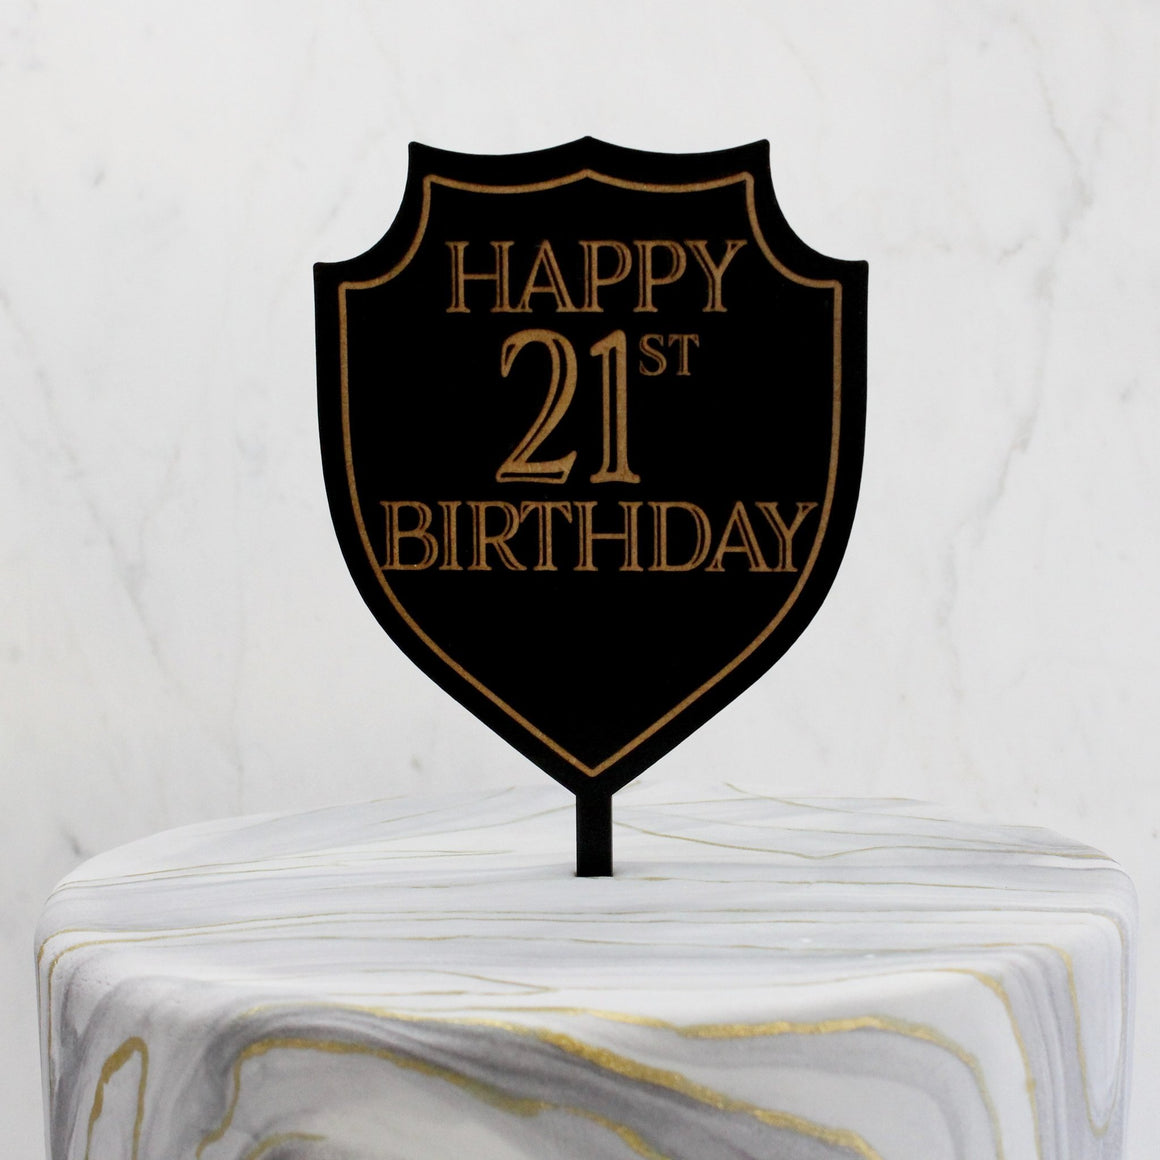 Personalized Porter Crest Cake Topper